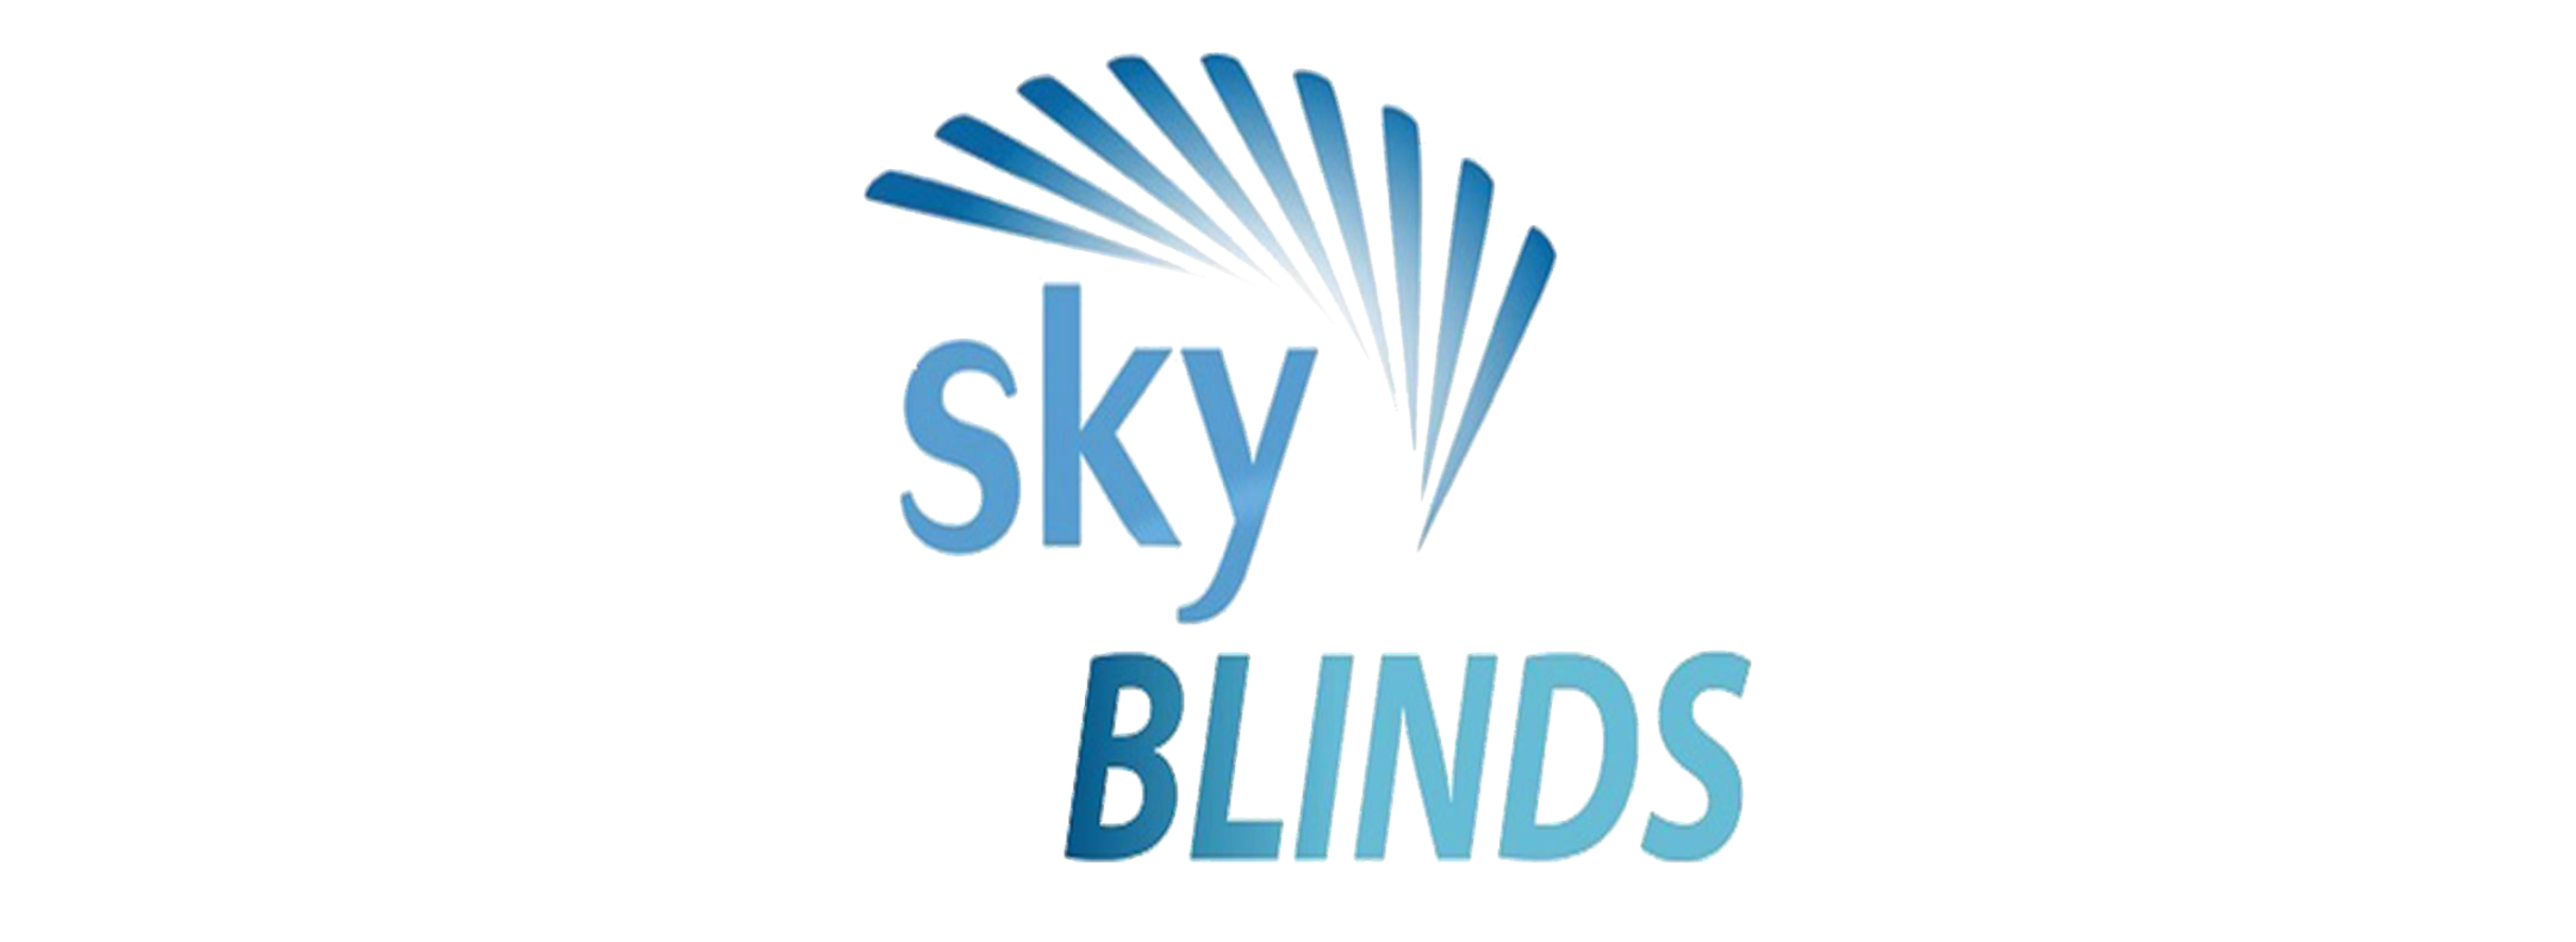 The Sky Blinds logo